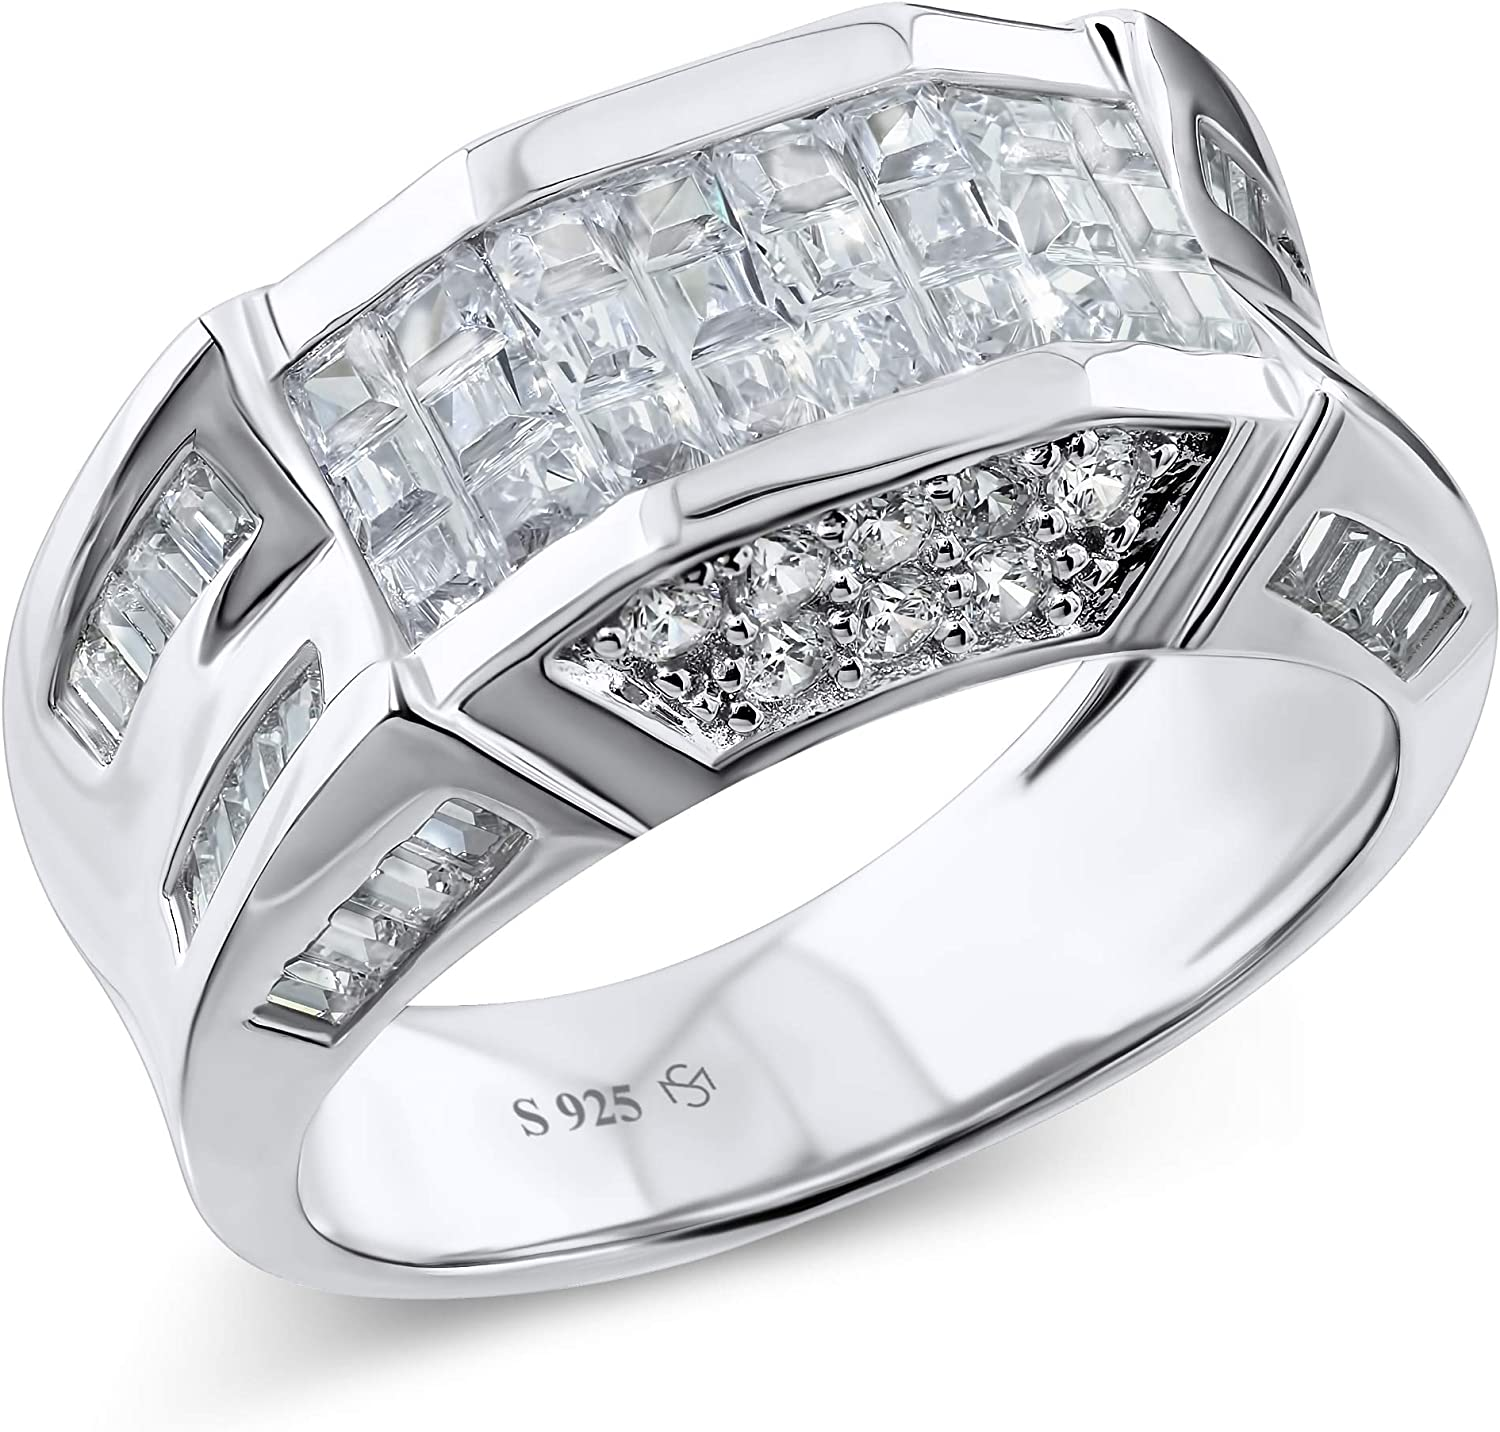 [2-5 Days Delivery] Men's Sterling Silver .925 Designer Ring Band Featuring 52 Round and Baguette Invisible and Channel Set Cubic Zirconia (CZ) Stones